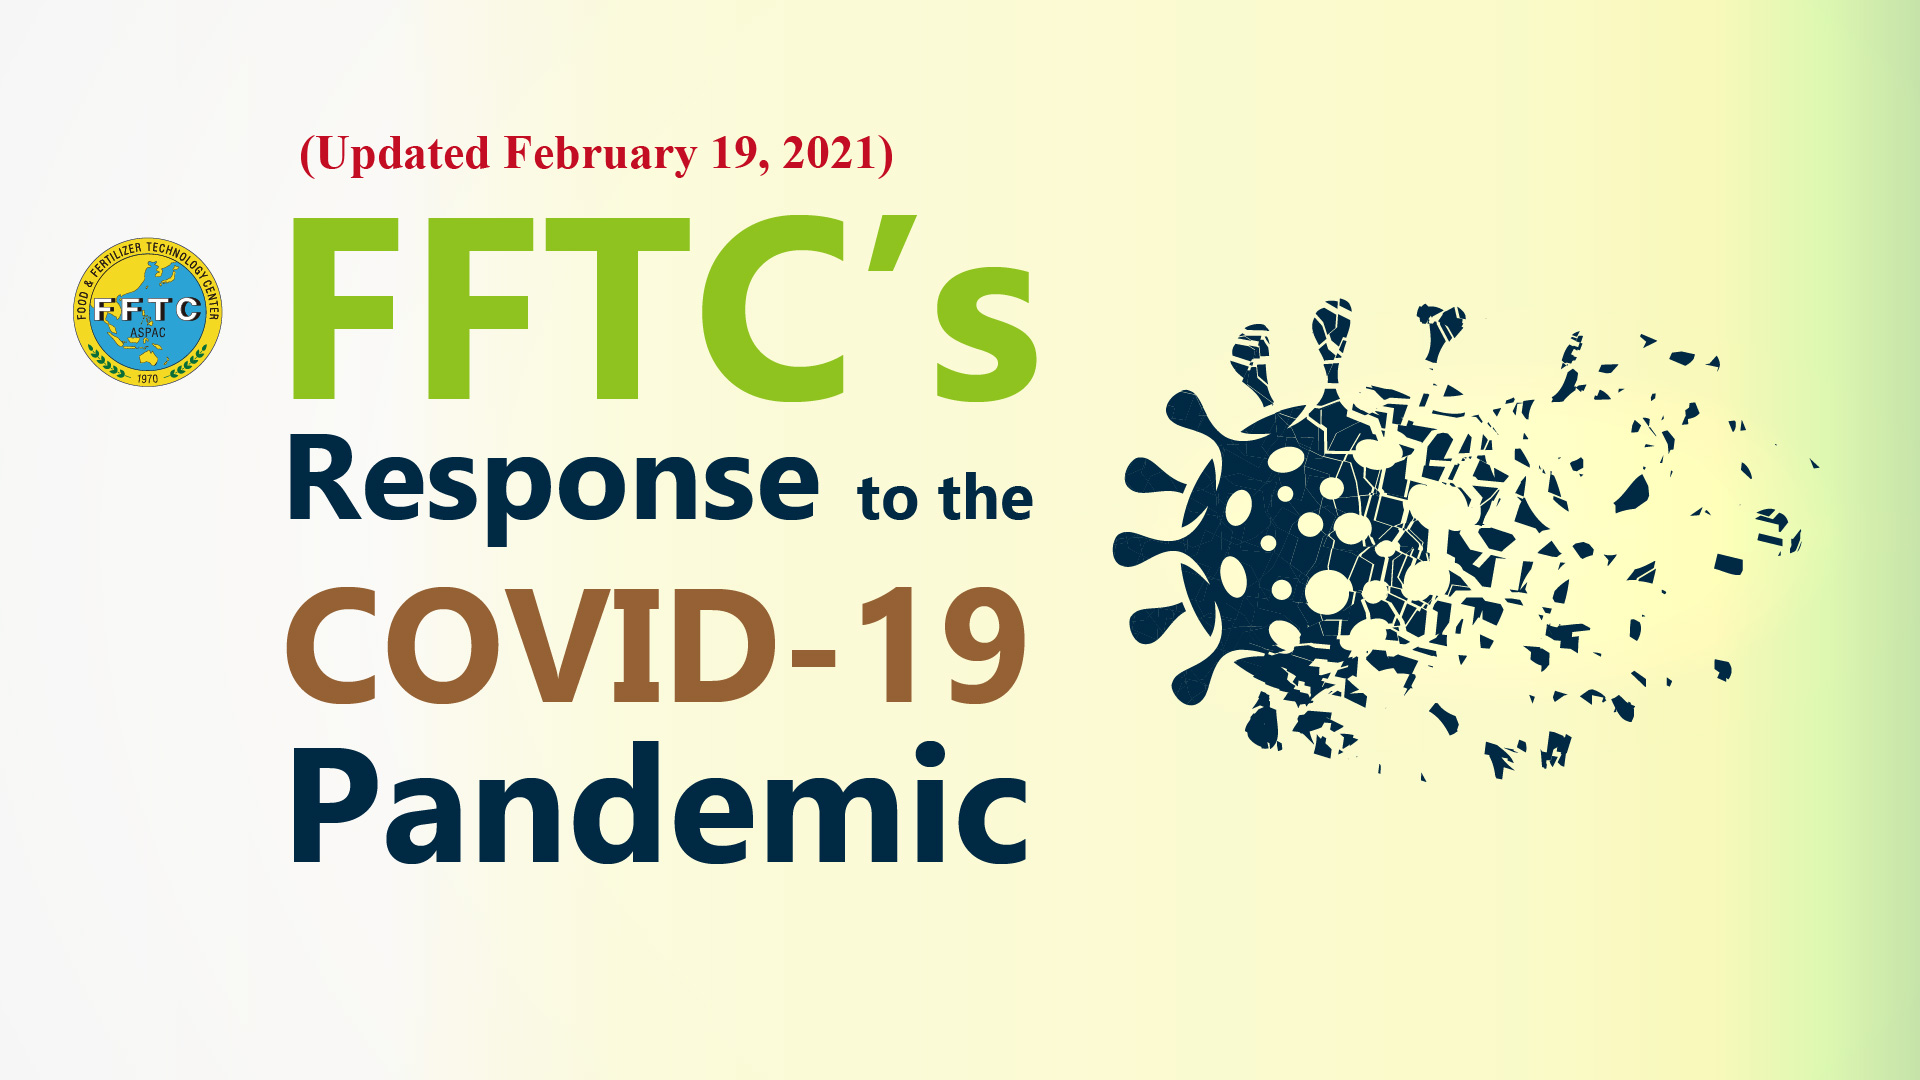 FFTC's response to the COVID-19 pandemic (Updated February 19, 2021)